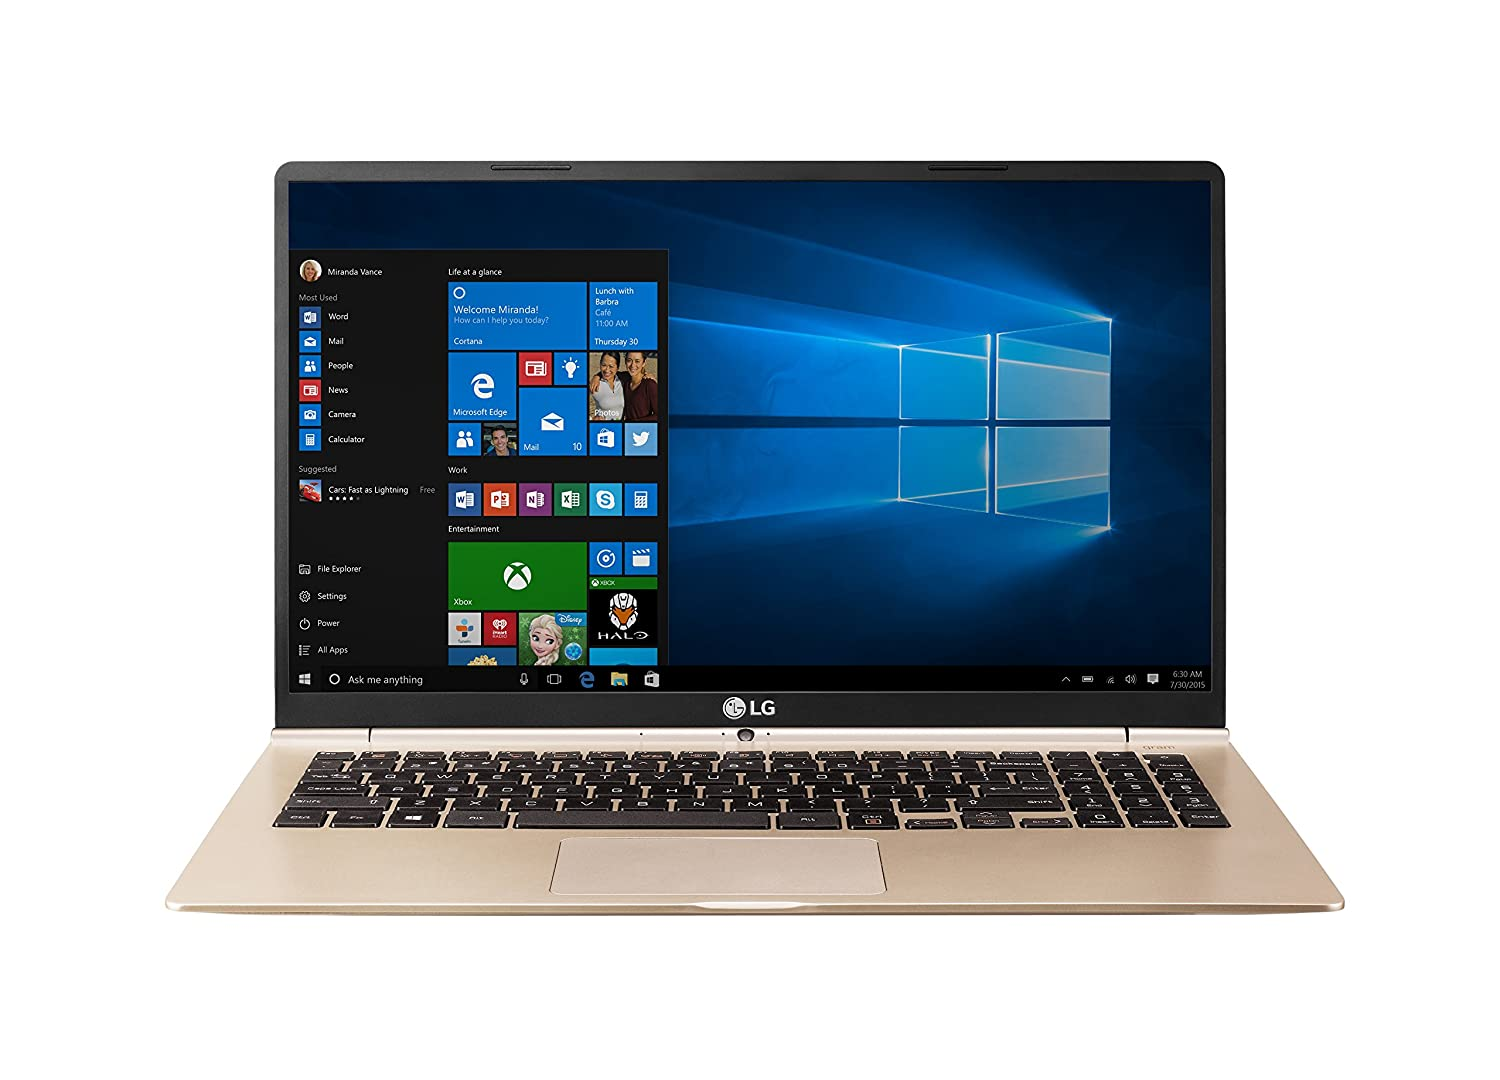 Amazon.com: LG Electronics 15Z960-A.AA75U1 15.6